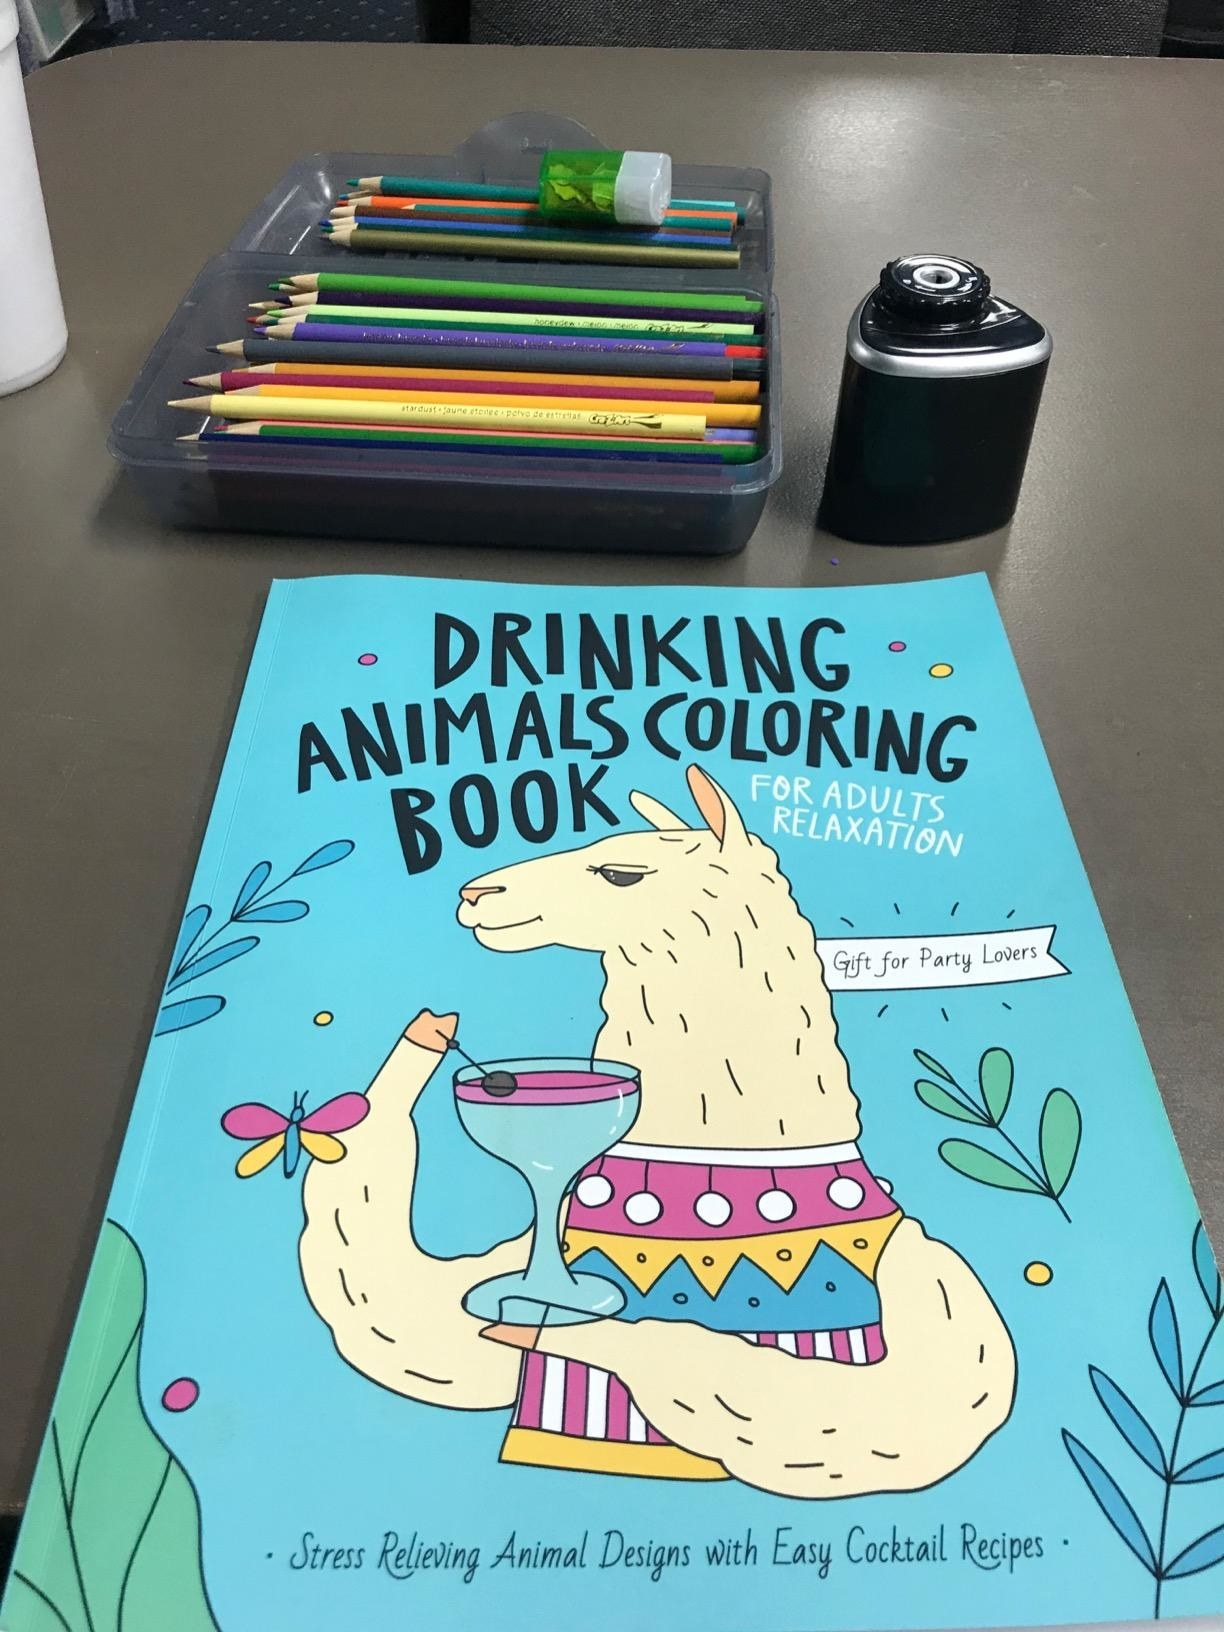 Reviewer image of the Drinking Animals Coloring Book